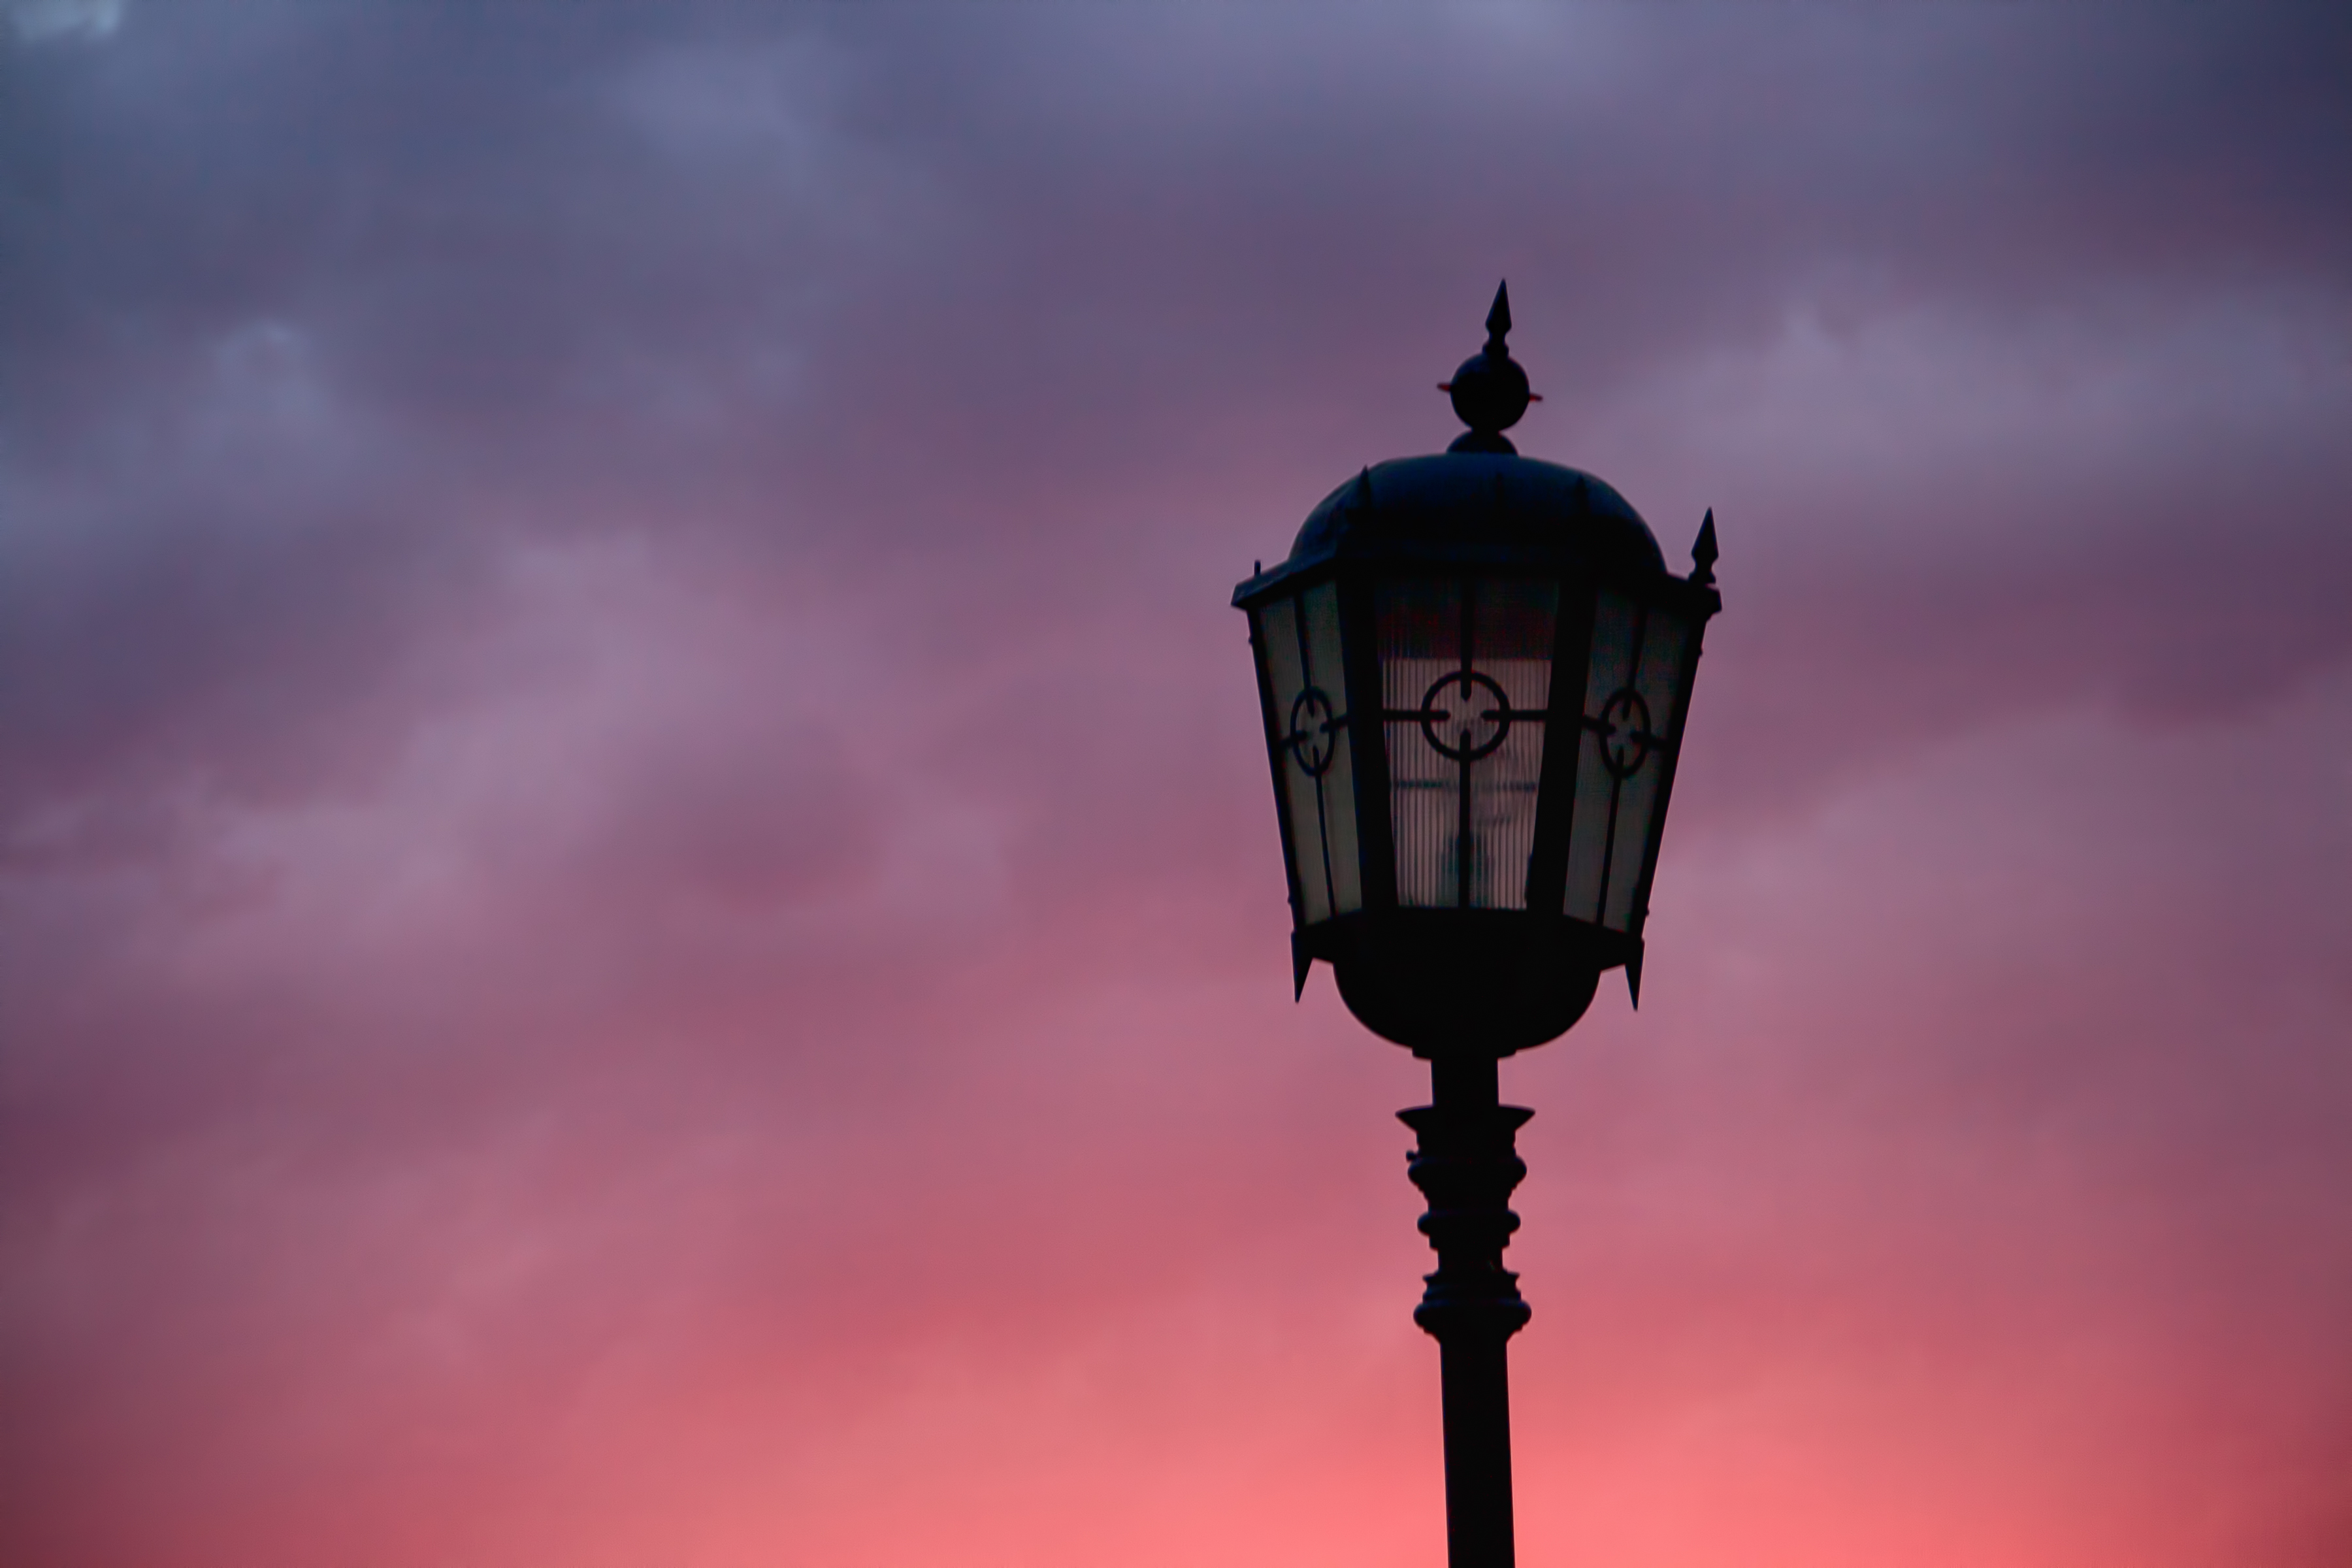 lamppost, Architecture, Lamp, Sunset, Street, HQ Photo